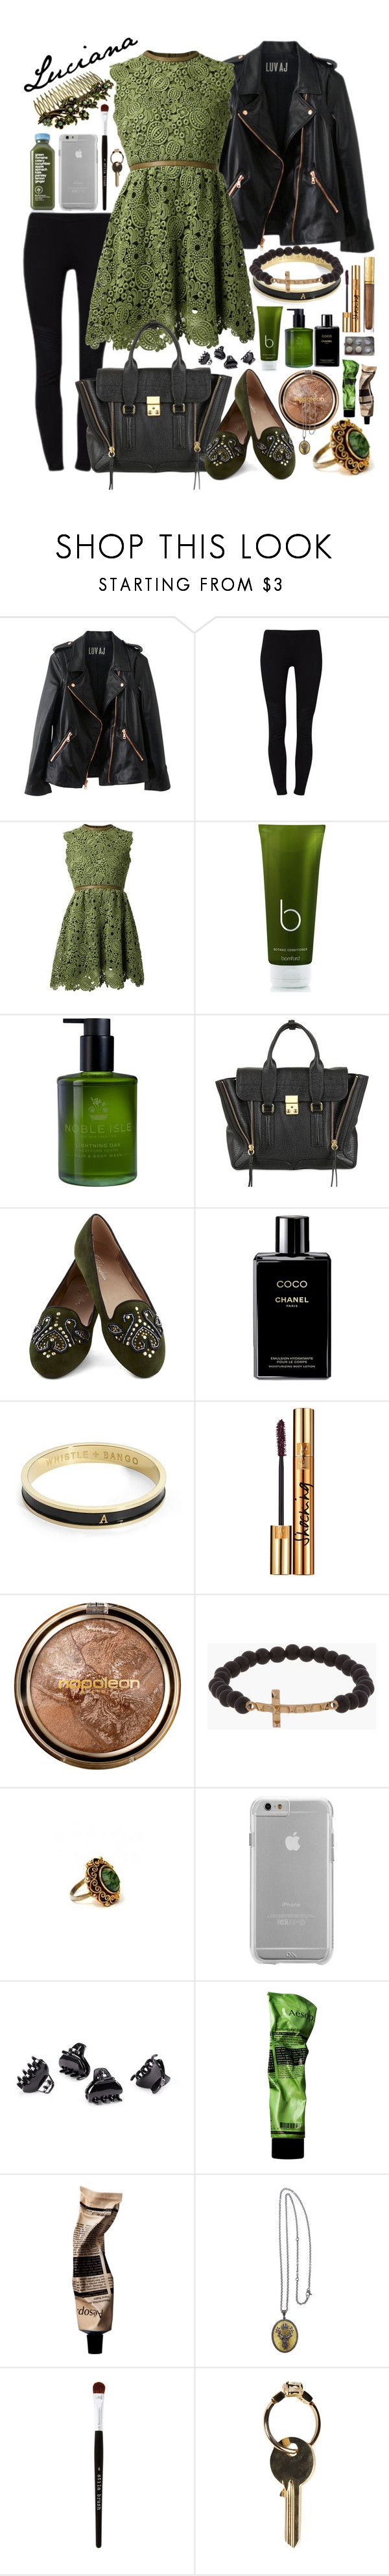 """Night out - Saturday, January 1st"" by business-casual ❤ liked on Polyvore featuring Rosegold, even&odd, Valentino, Bamford, Noble Isle, 3.1 Phillip Lim, Chanel, Estée Lauder, Whistle & Bango and Napoleon Perdis"